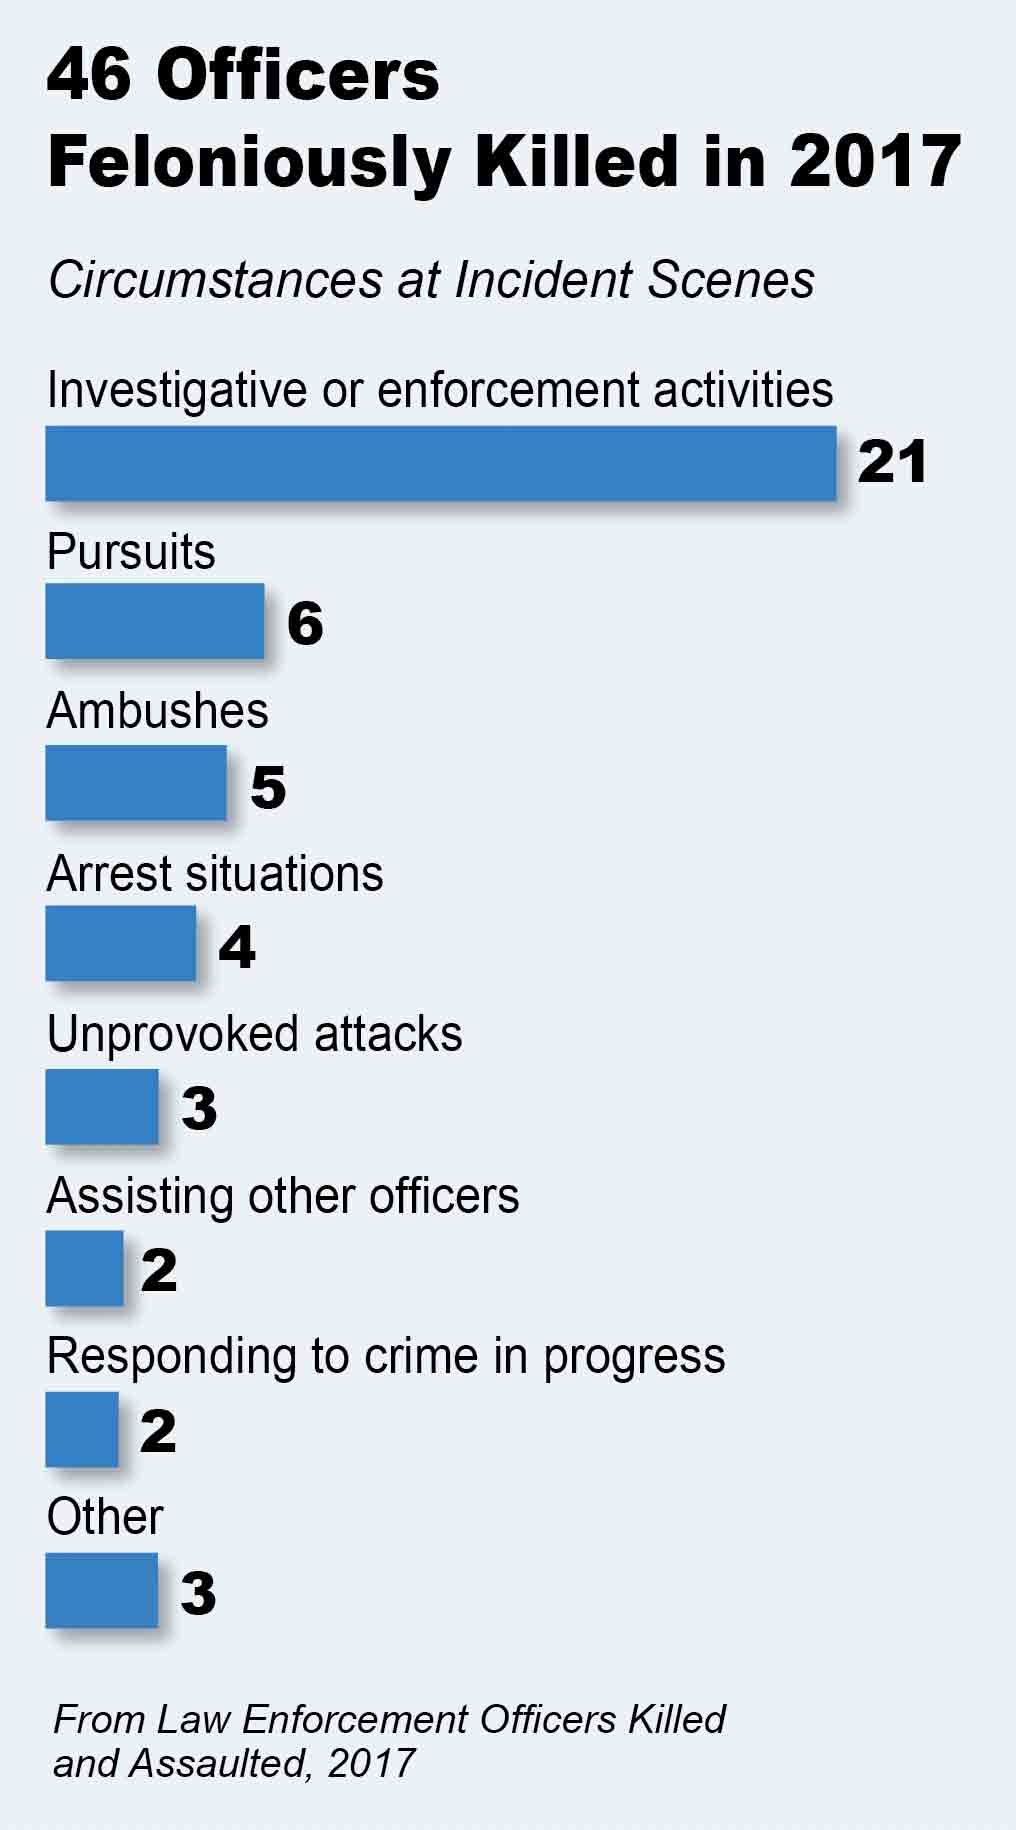 Bar chart depicting the circumstances in which officers were feloniously killed in 2017, according to statistics from the FBI's Law Enforcement Officers Killed and Assaulted, 2017 report.